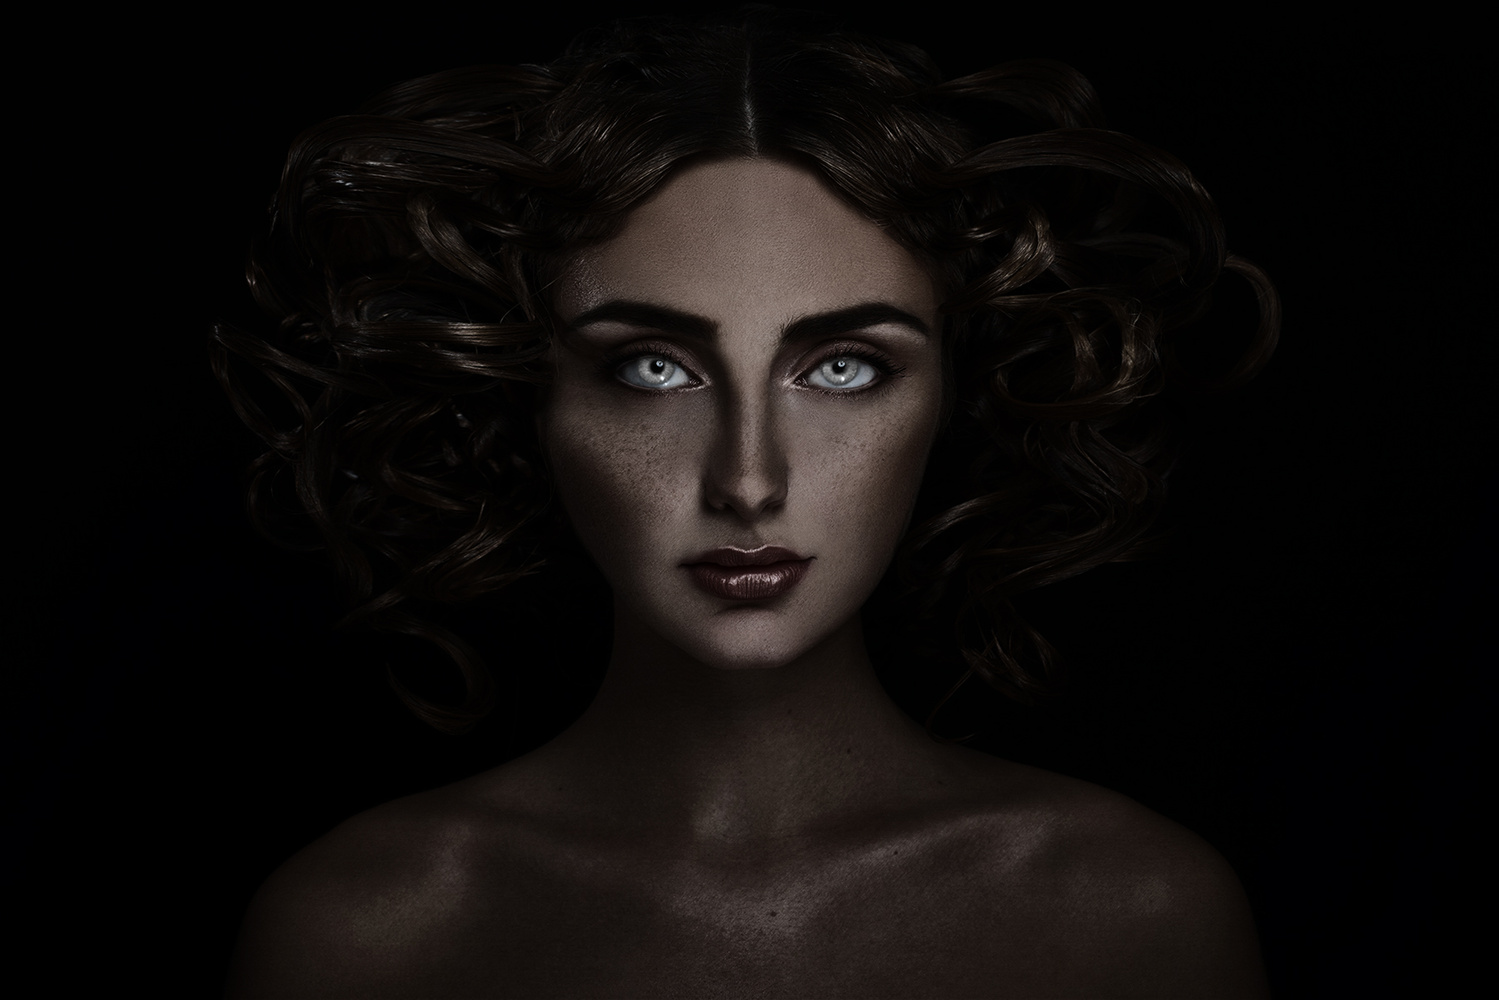 King Lioness by Marc lamey